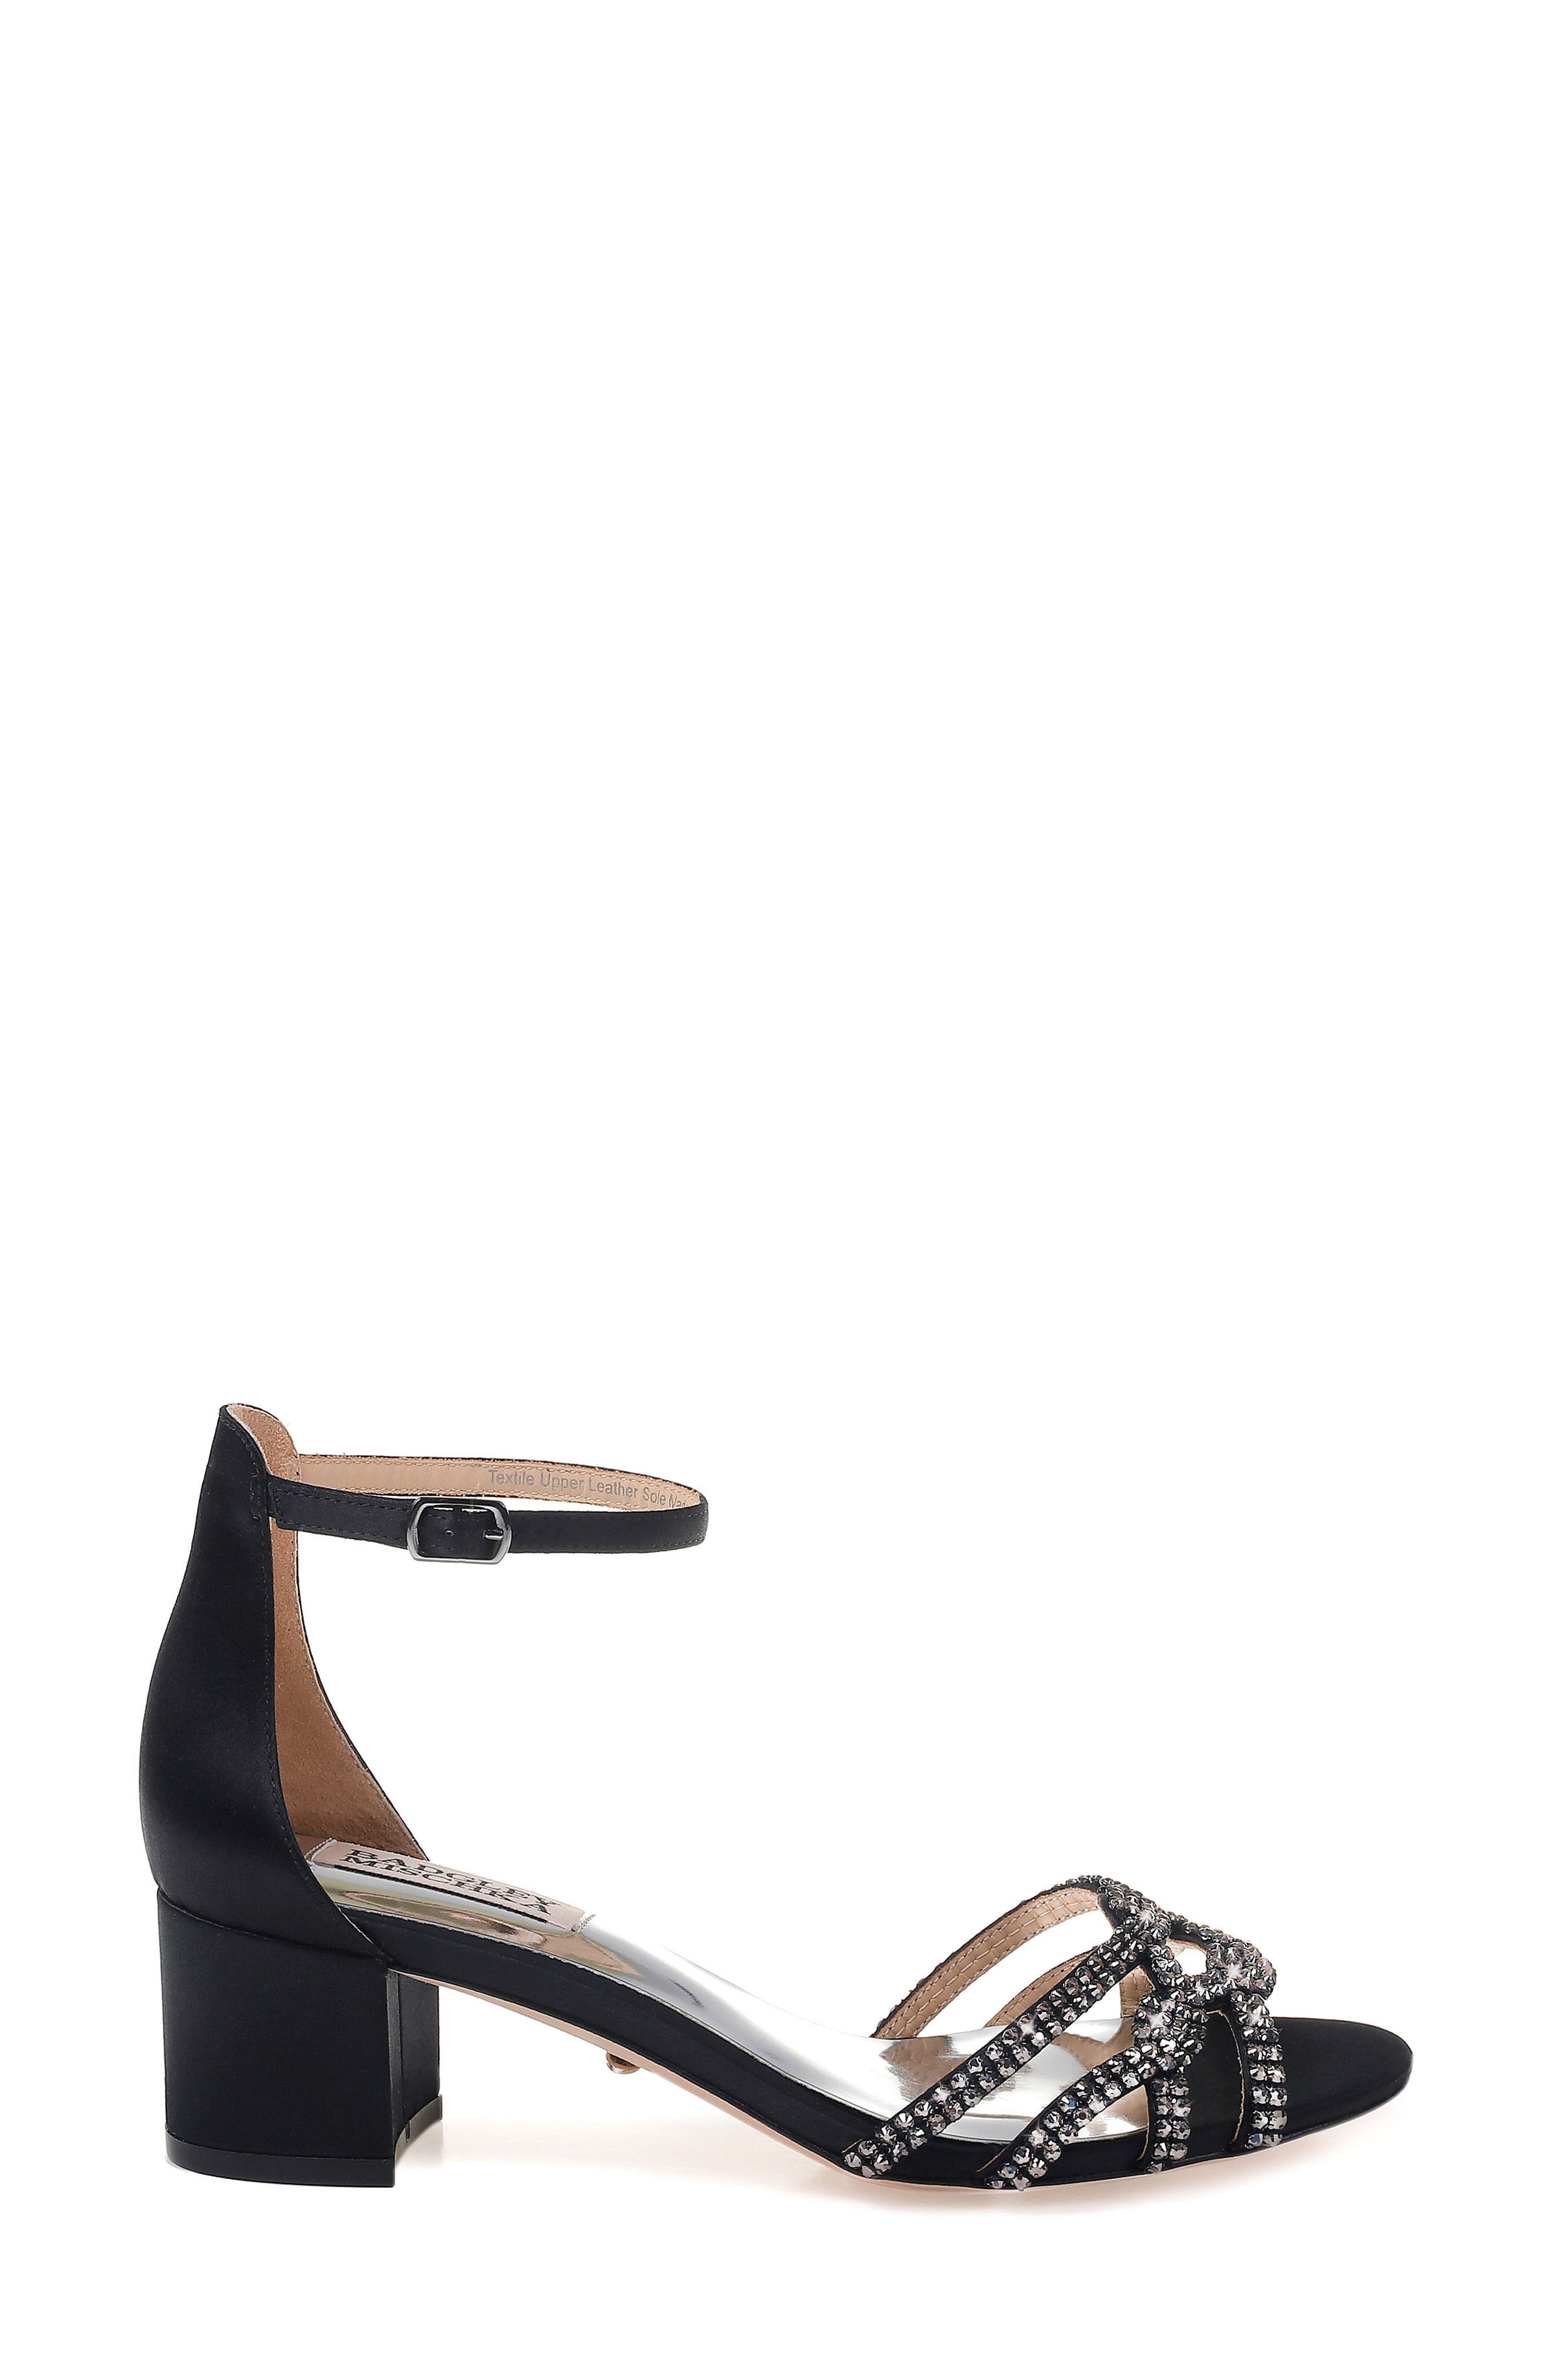 Badgley Mischka Sonya Block Heel Sandal,                             Alternate thumbnail 3, color,                             015